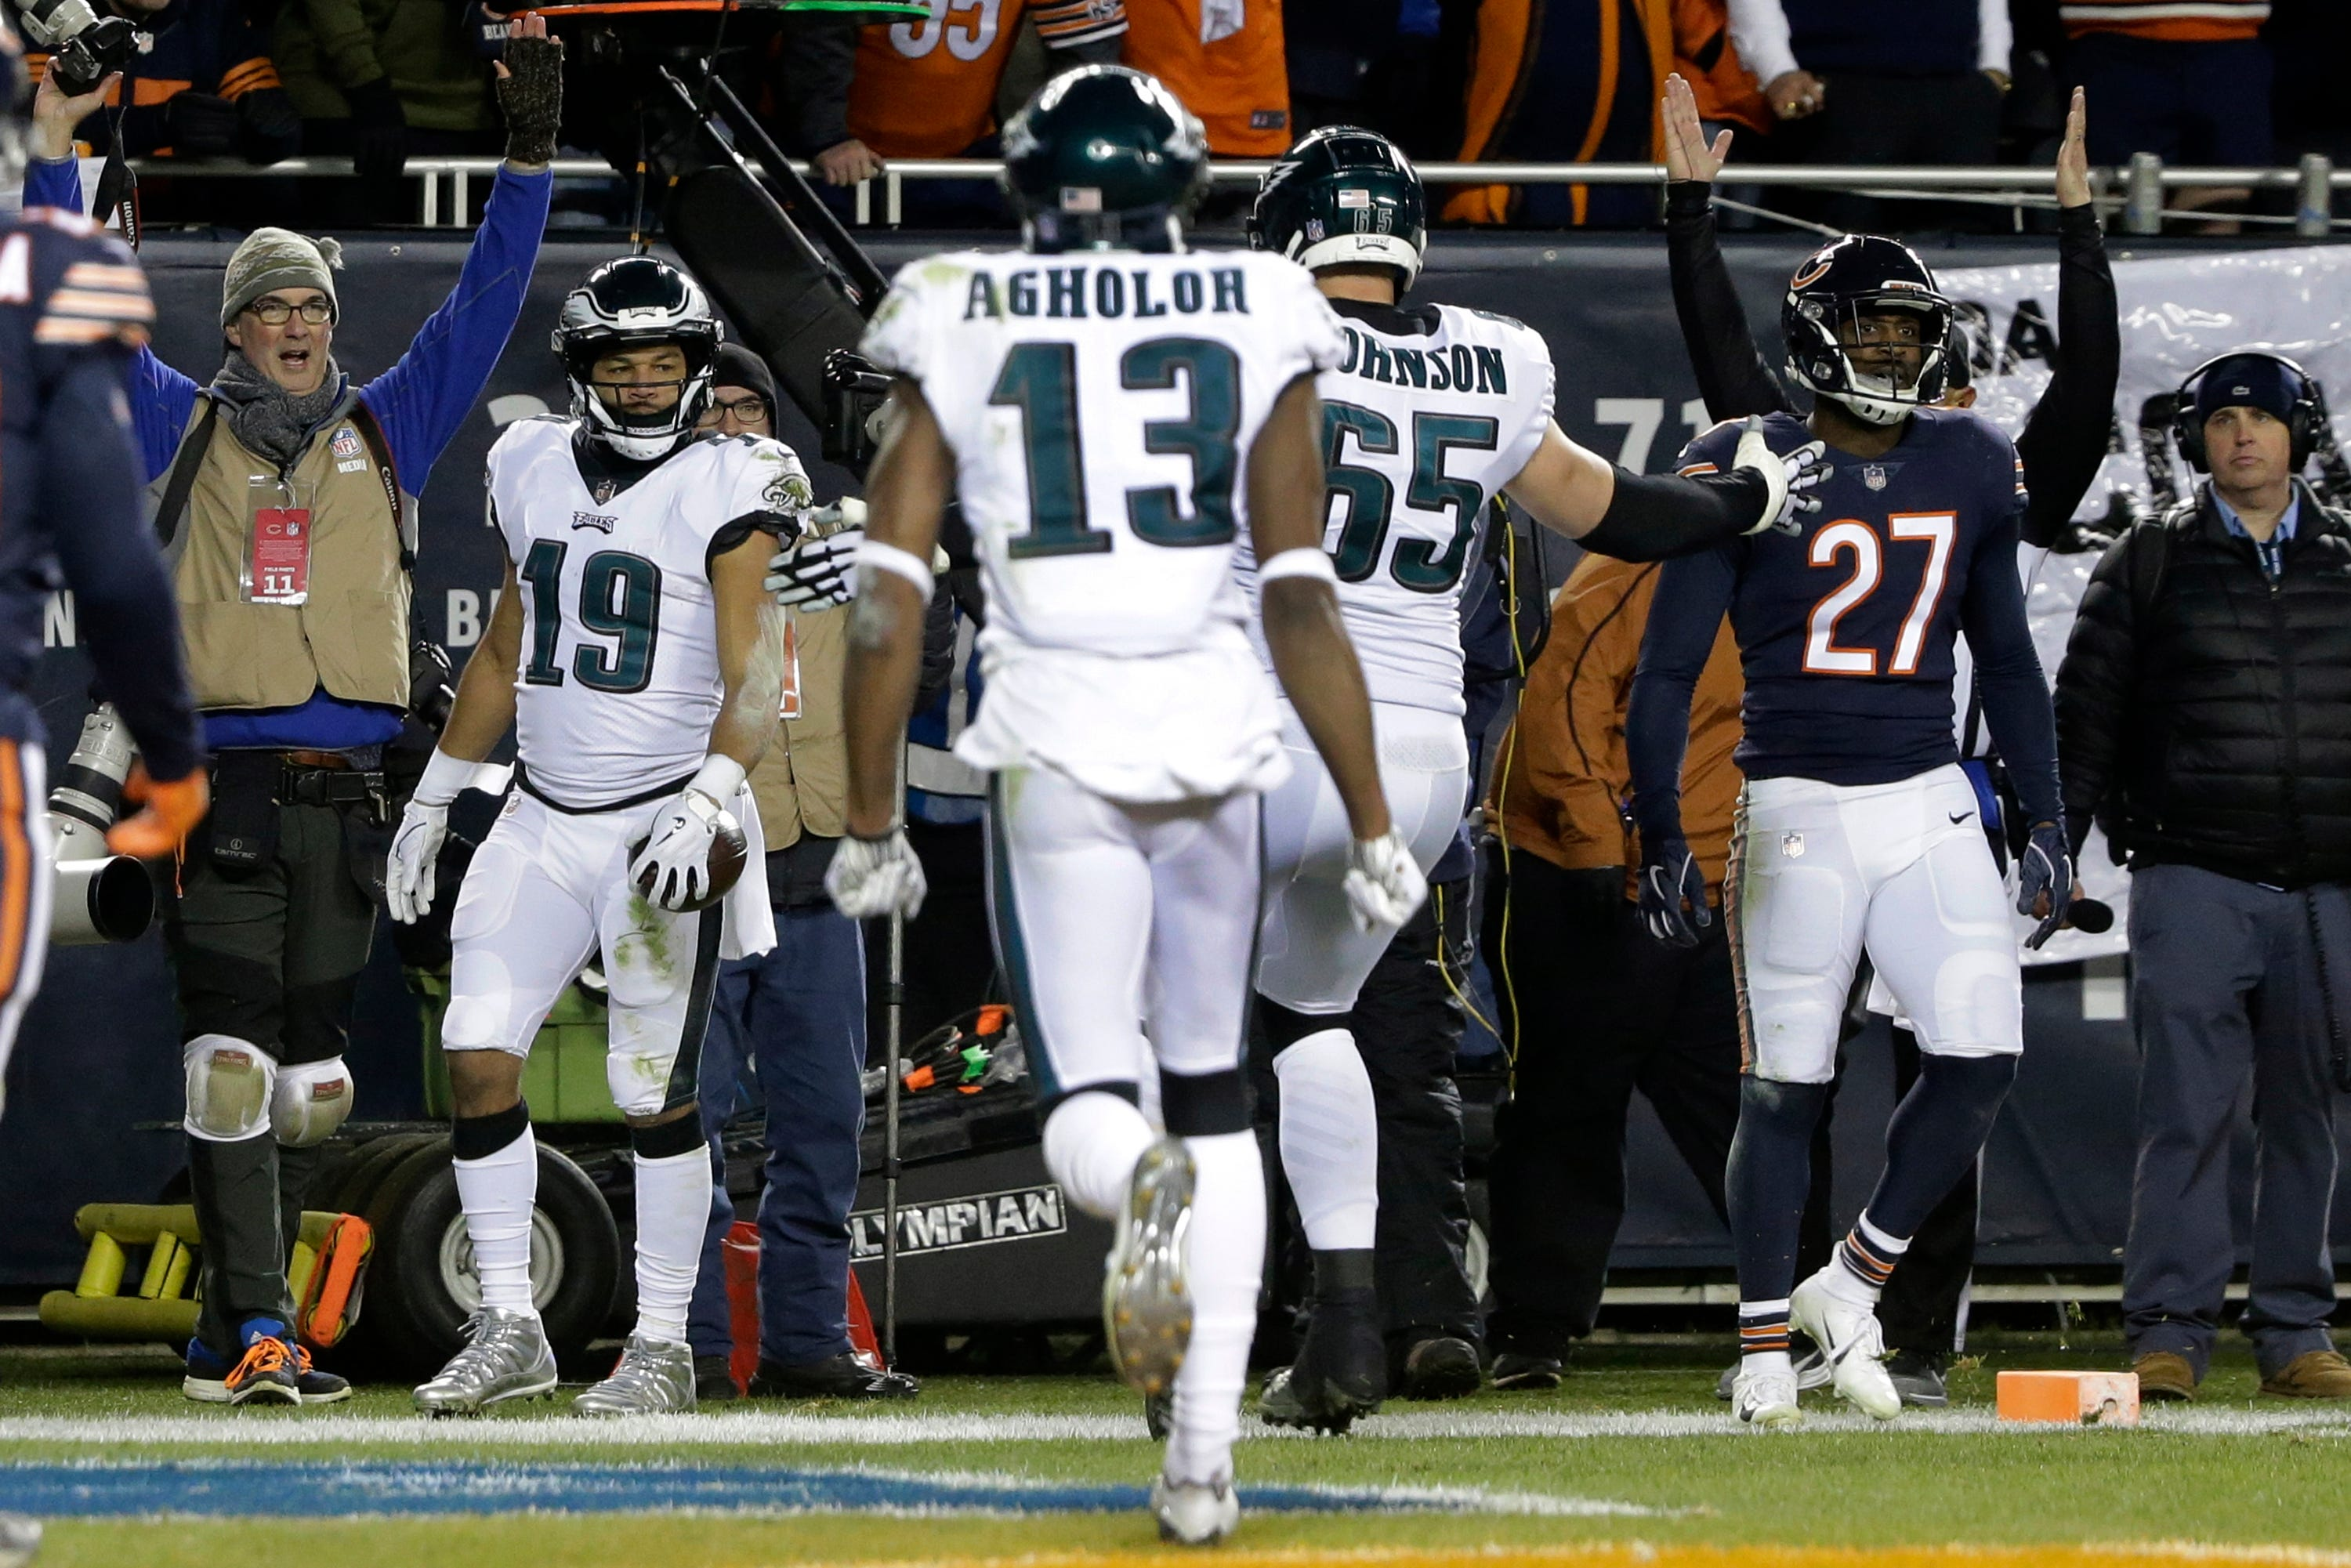 Reigning Super Bowl champion Eagles aren't done yet